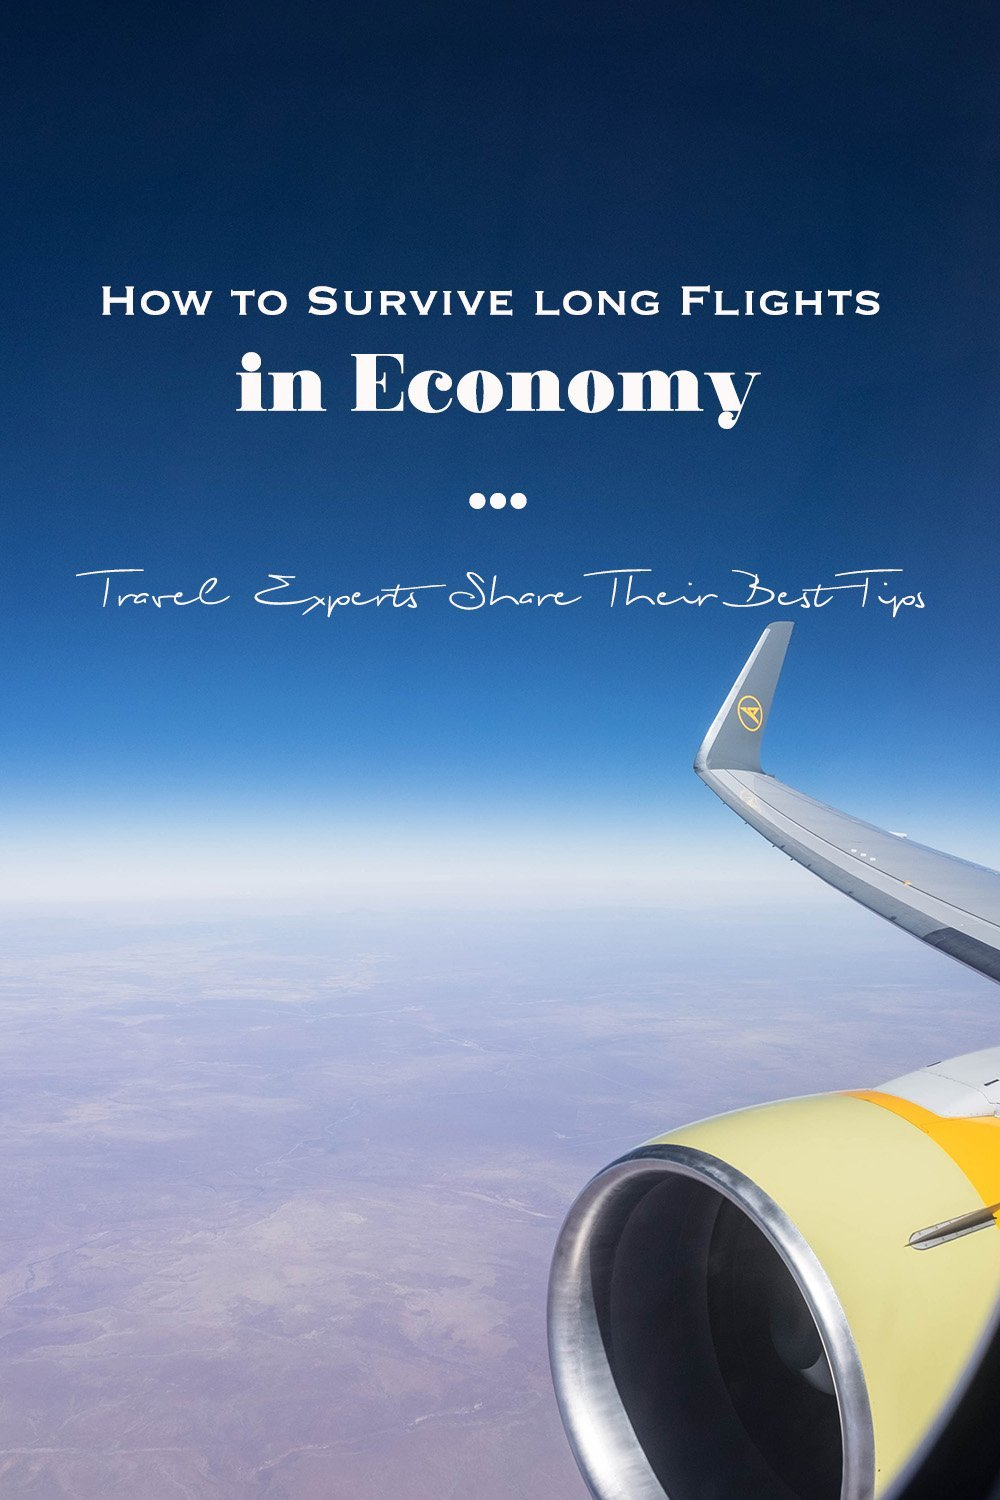 Need some tips on how to survive long flights in economy? I gathered some awesome travel experts with their best advice for flying including choosing an upgrade with Condor's Premium Economy Class. #southafrica #airline #plane #condor